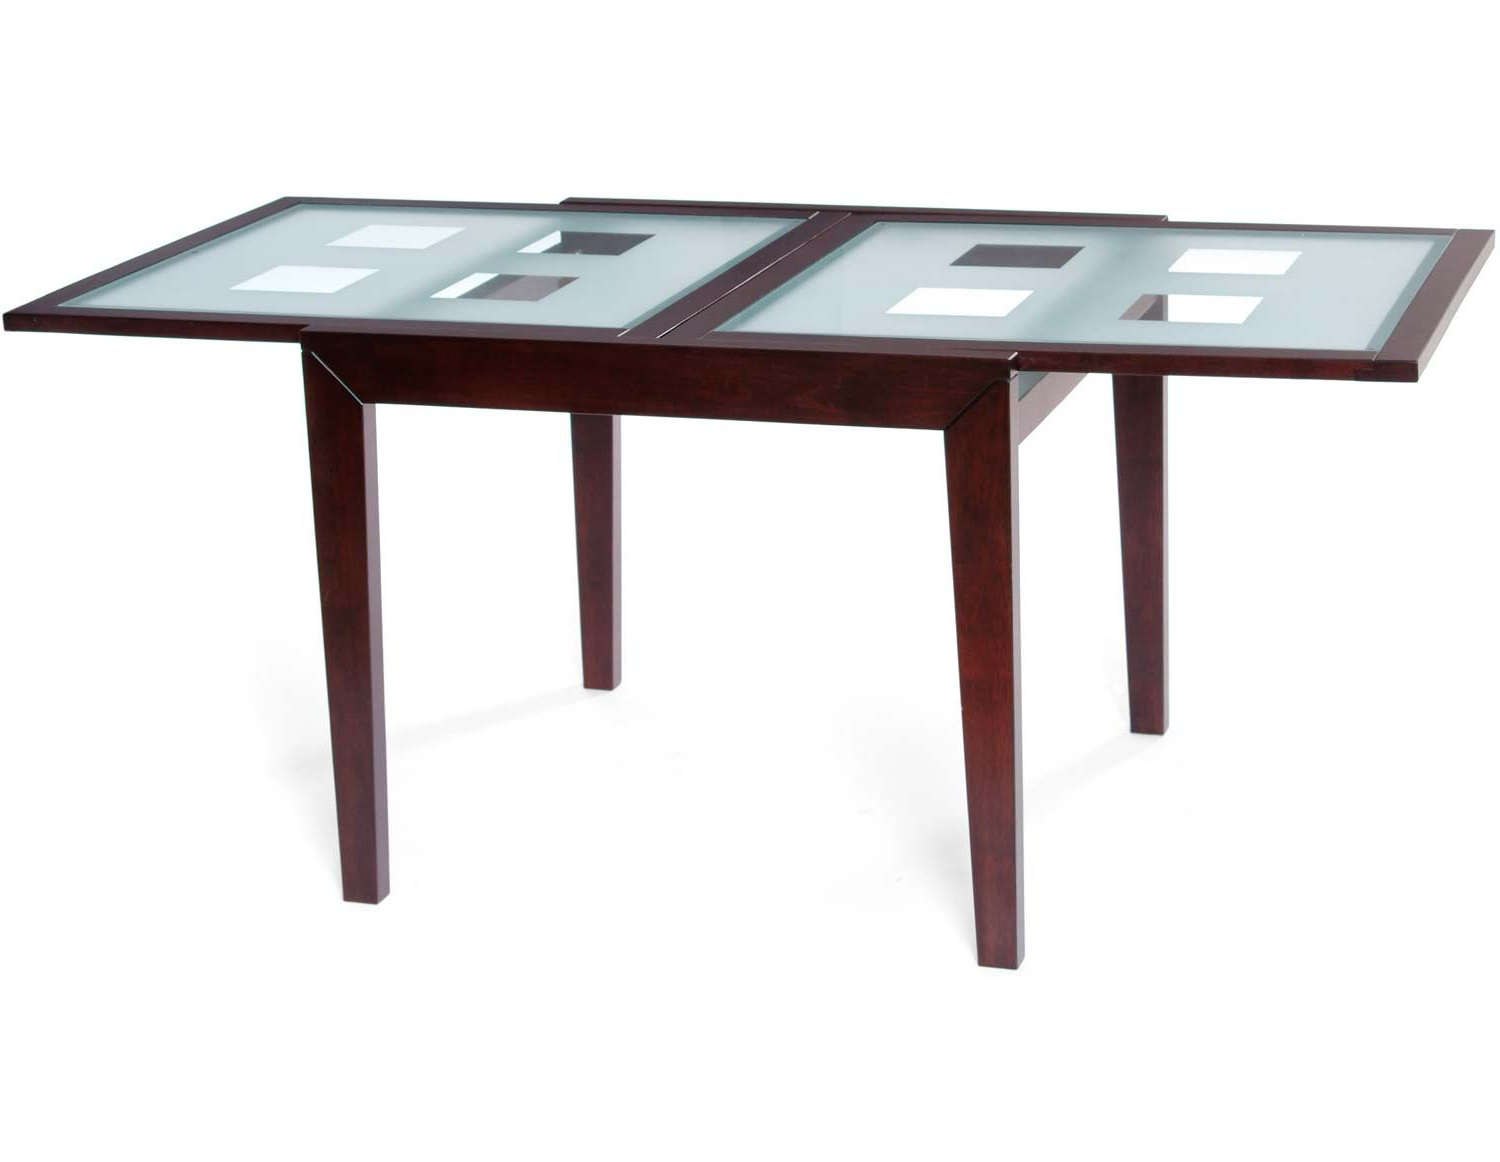 Preferred Modern Glass Top Extension Dining Tables In Matte Black Intended For Tivoli Extendable Dining Room Glass Top $599 Structube  (View 26 of 30)